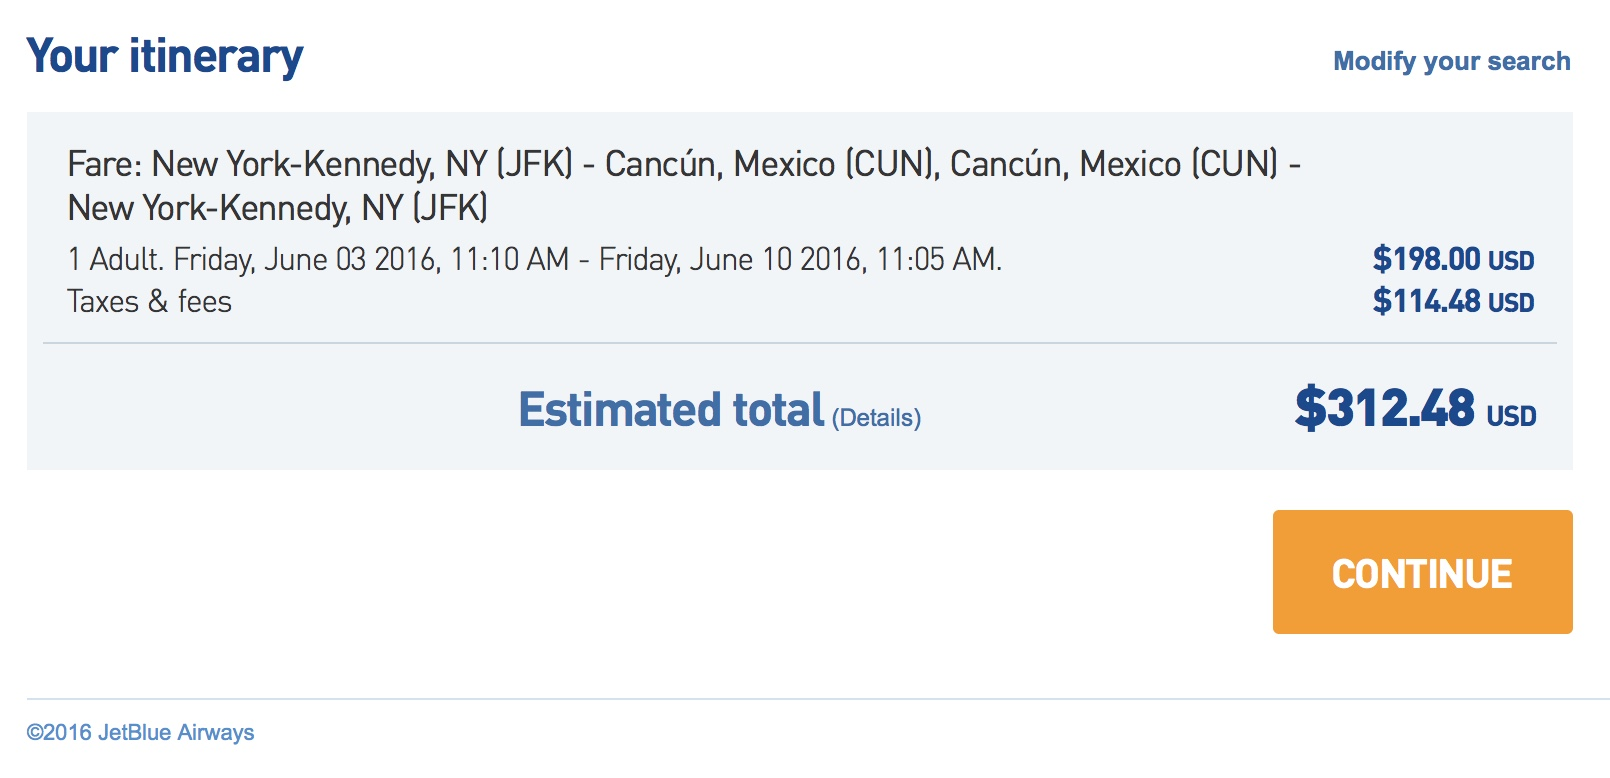 JFK to CUN for $315